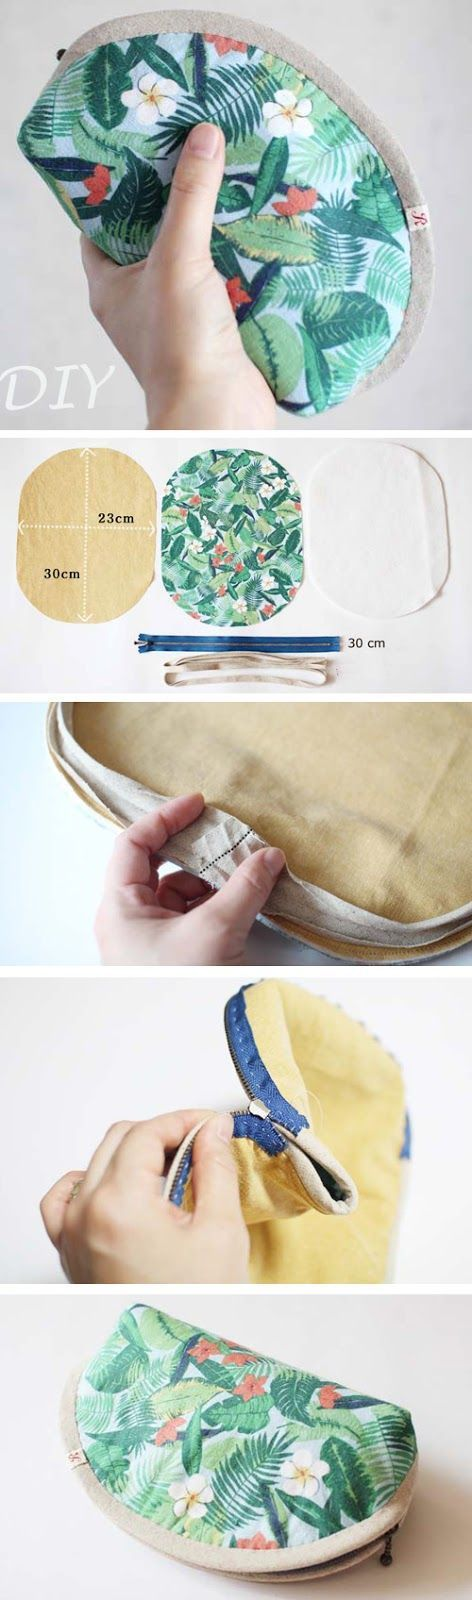 40 best bolsa images on Pinterest | Sewing ideas, Clutch bag and ...